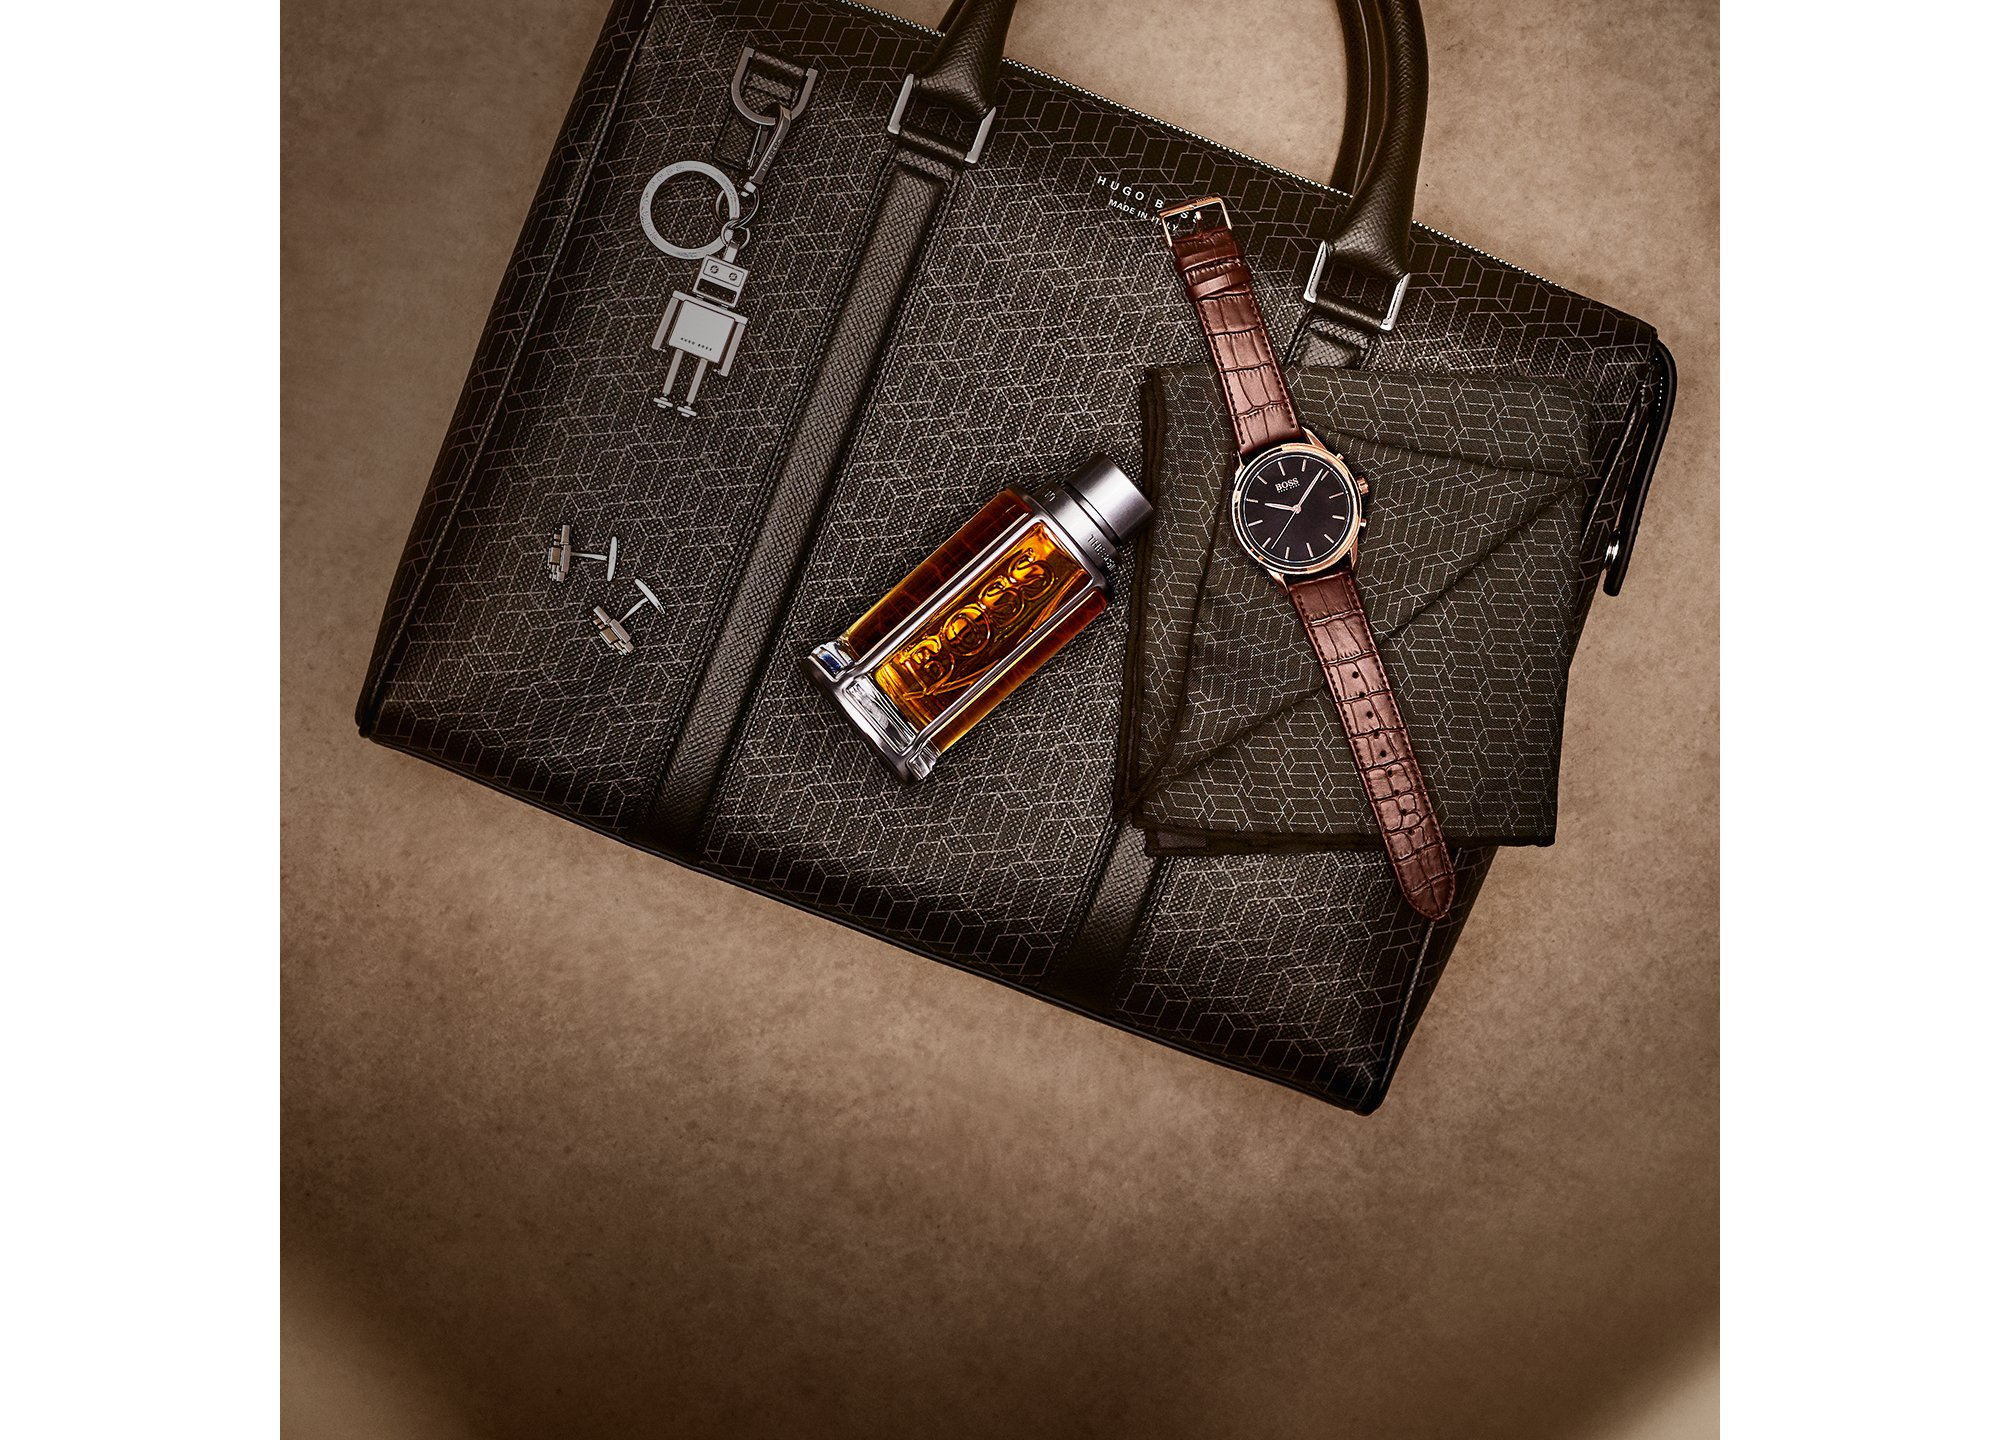 Borsa in pelle, orologio, BOSS The Scent da uomo by BOSS